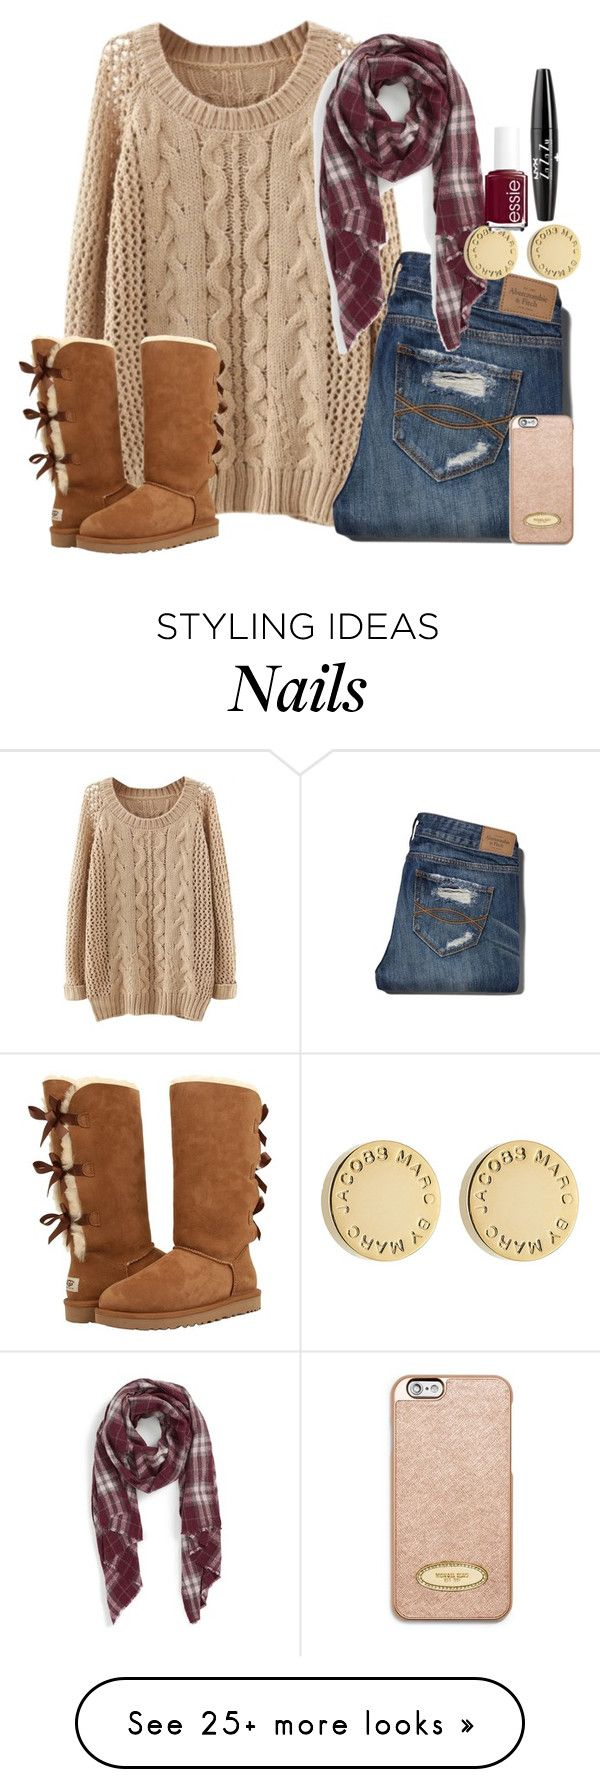 """James 4:7 ""Submit yourselves therefore to God. Resist the devil, and he will flee from you."""" by shannaolo on Polyvore featuring Abercrombie & Fitch, Sole Society, Marc by Marc Jacobs, Essie, NYX, UGG Australia and MICHAEL Michael Kors"